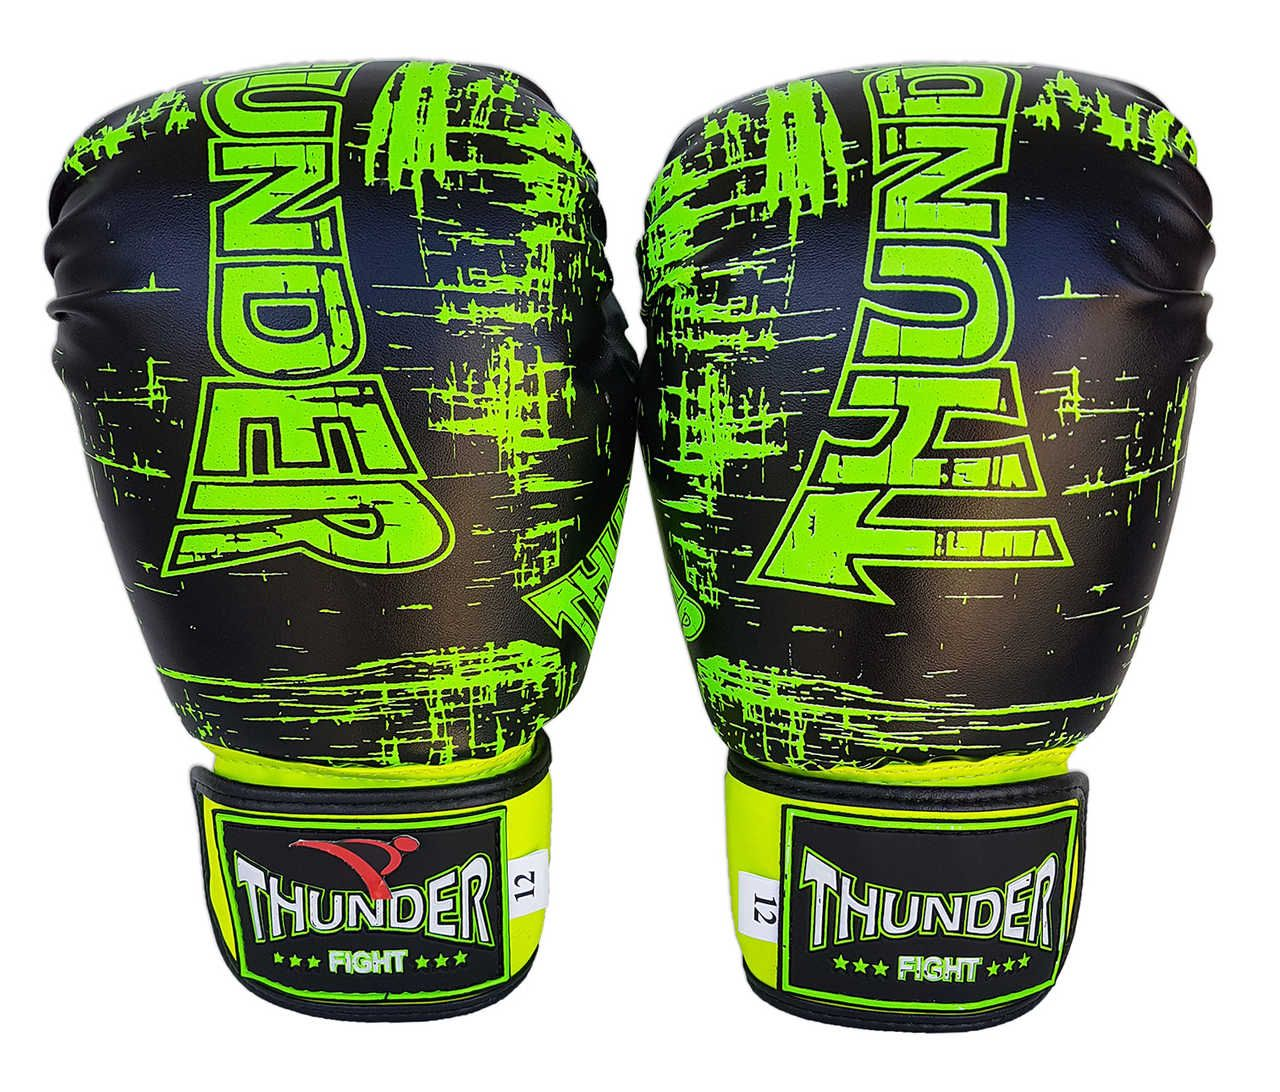 Luva de Boxe / Muay Thai 16oz - Preto Riscado Verde - Thunder Fight  - PRALUTA SHOP